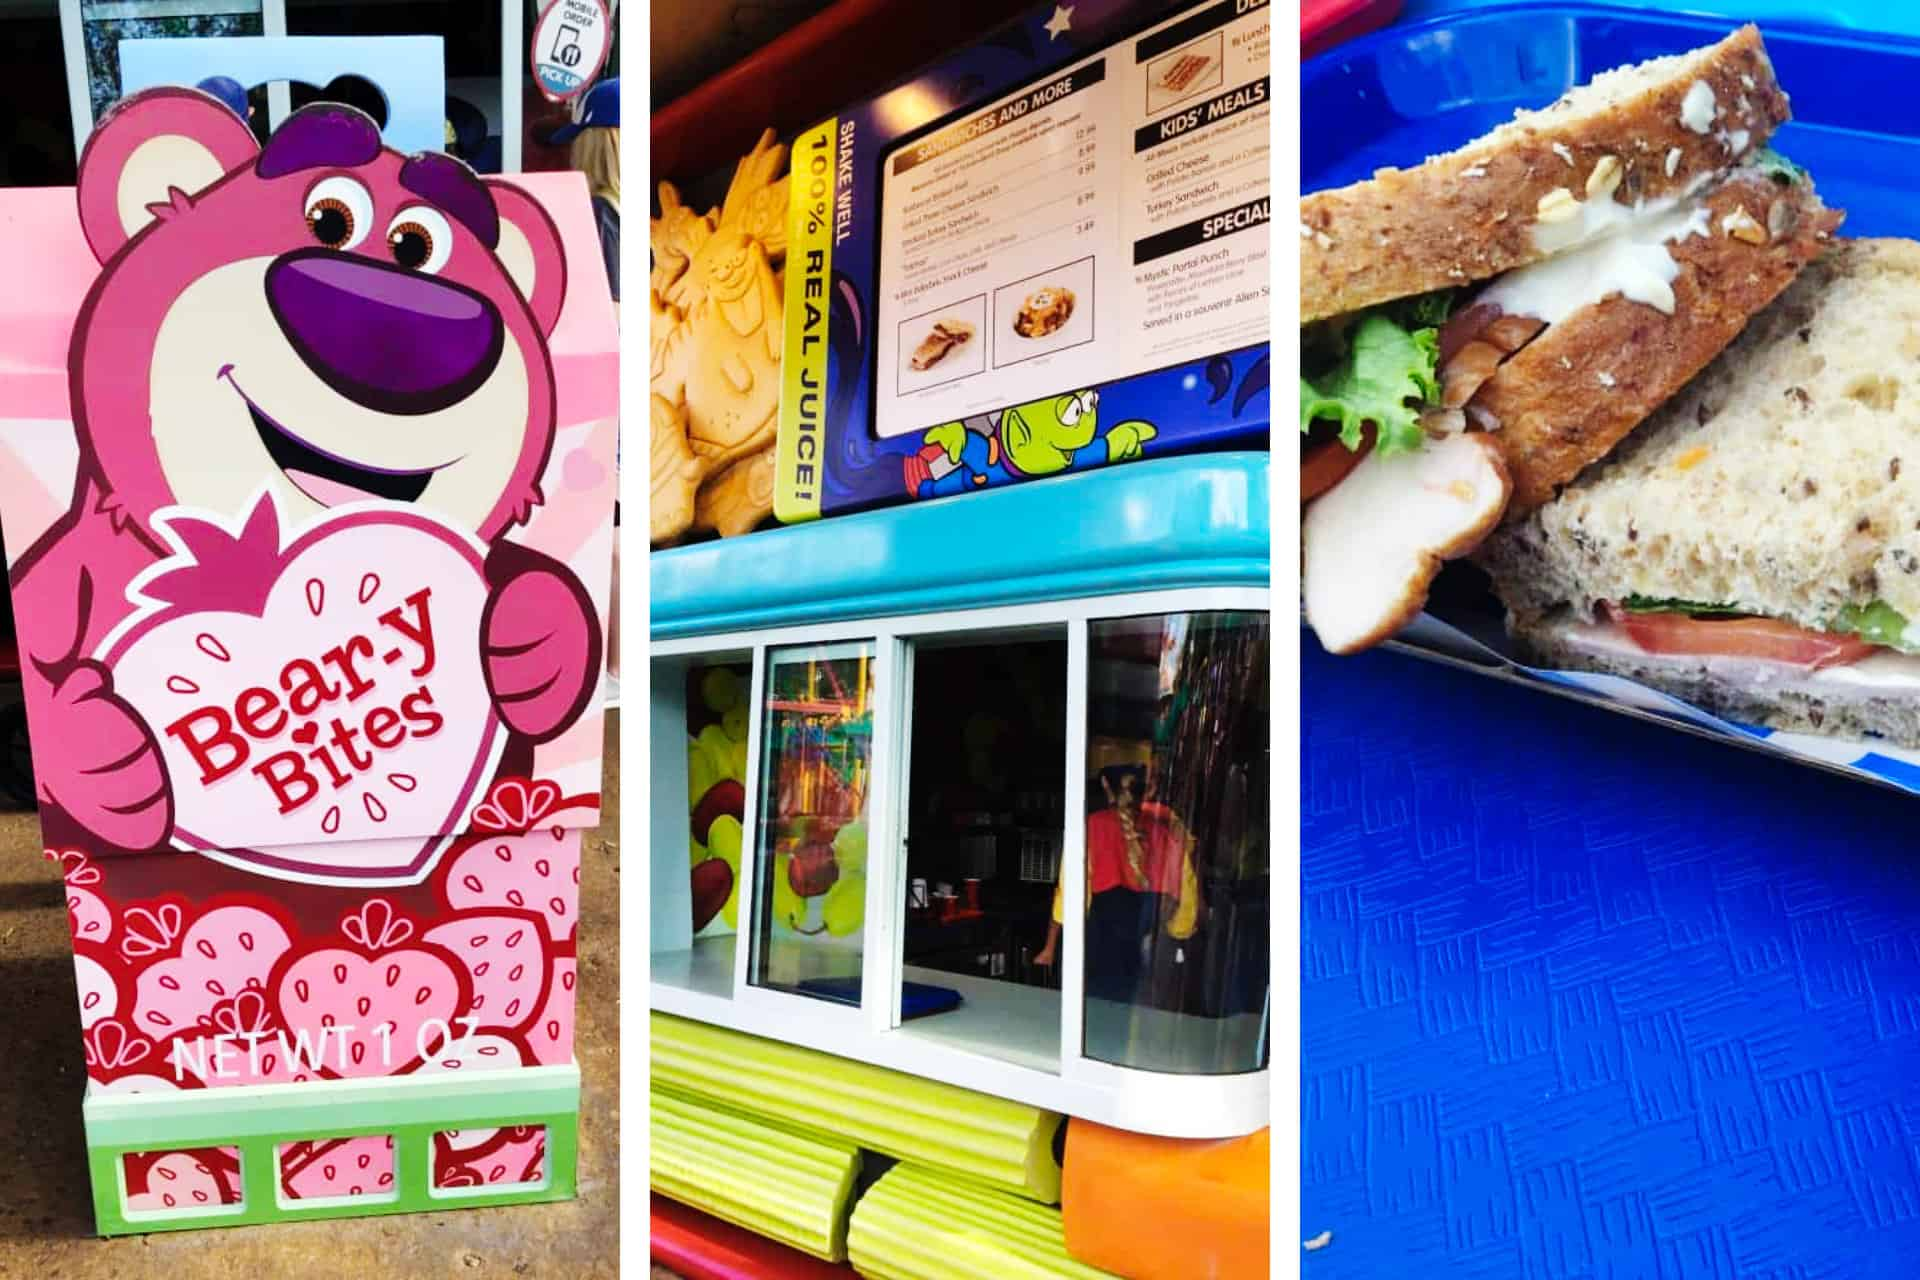 Images from Woody's Lunchbox at Disney World - a sandwich, a Beary Bites sign, and the ordering counter